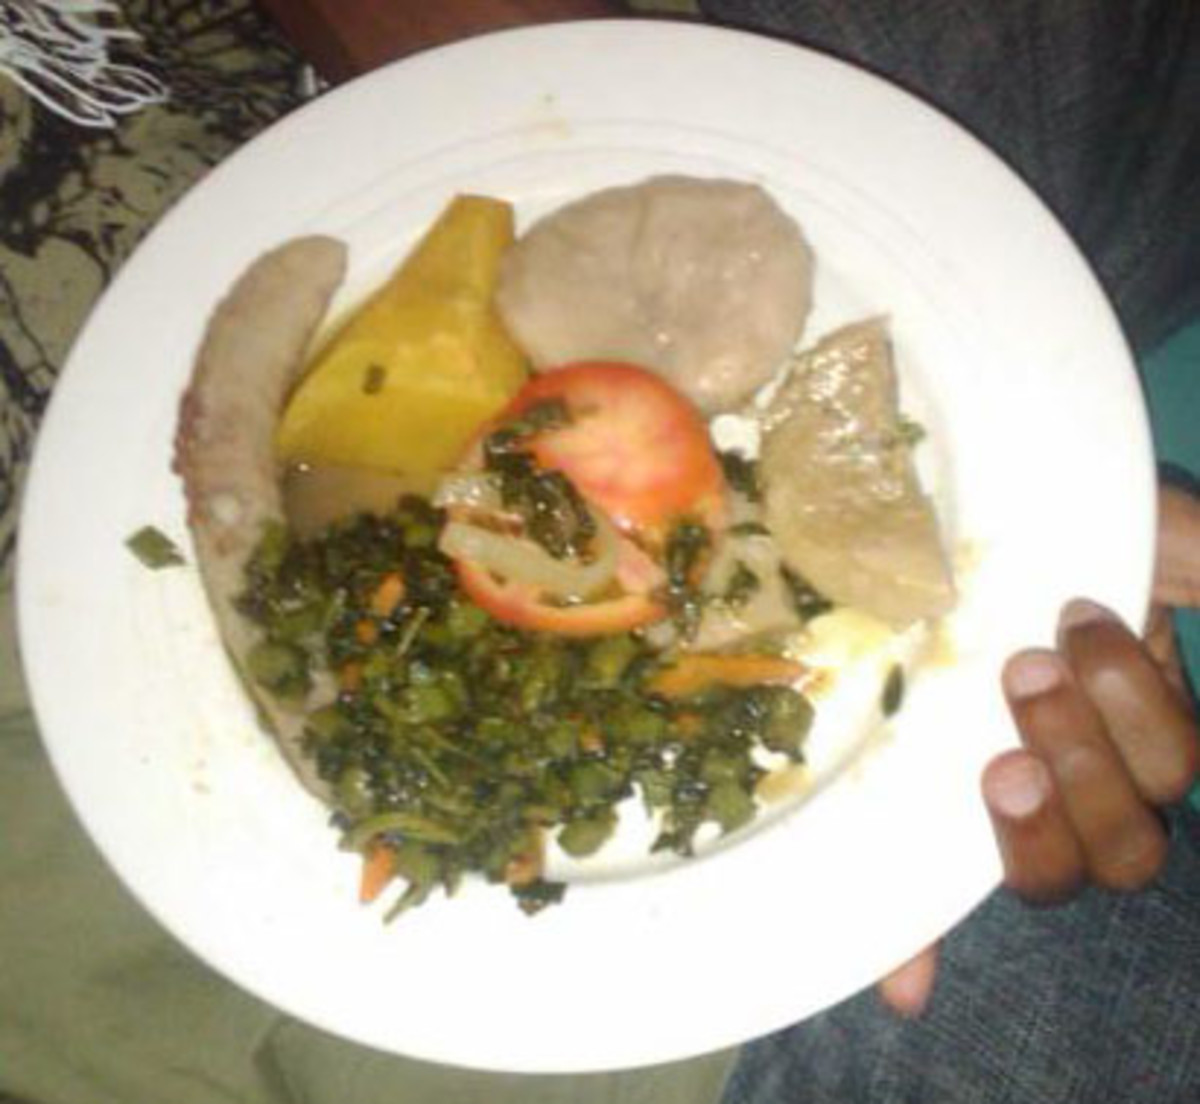 A typical Jamaican-Rastafarian vegetarian food with Boiled Yam, Banana, Dumpling with tomato and callaloo